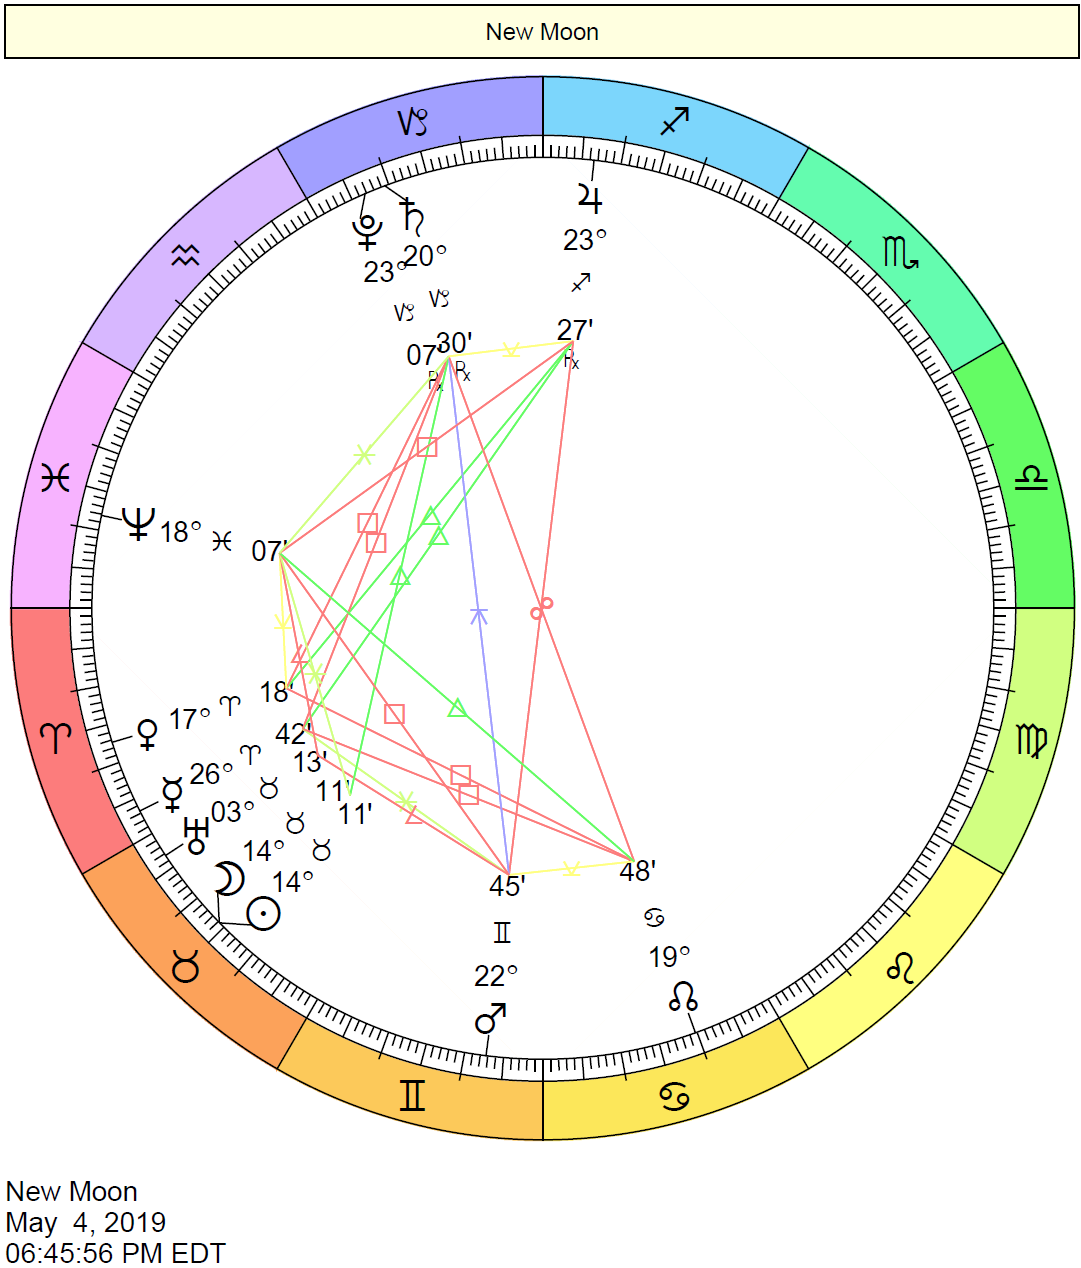 New Moon in Taurus Chart: May 4, 2019